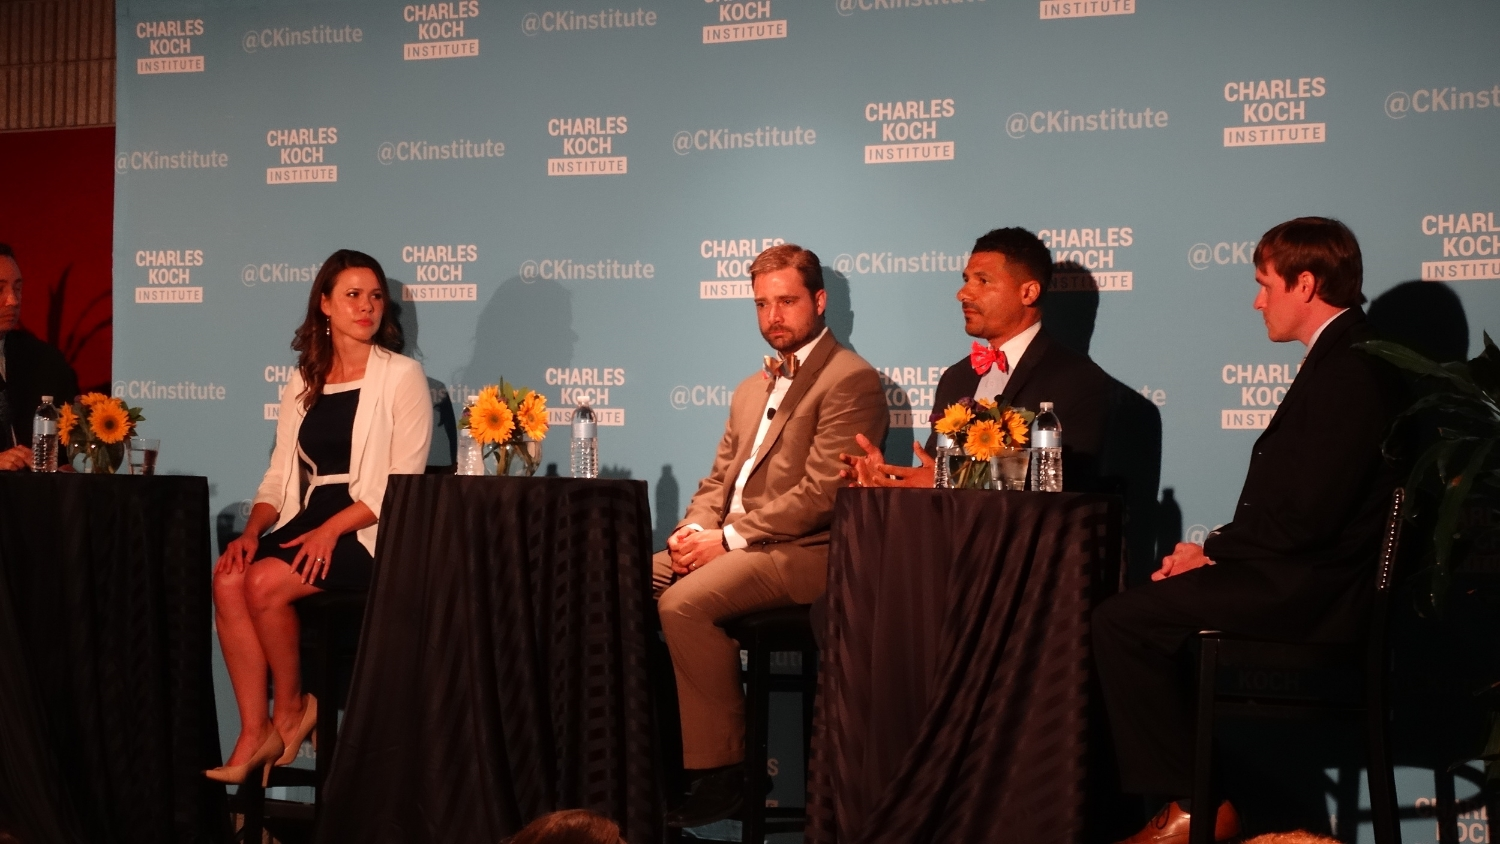 Stephanie participates in a school choice panel at the Charles Koch Institute.